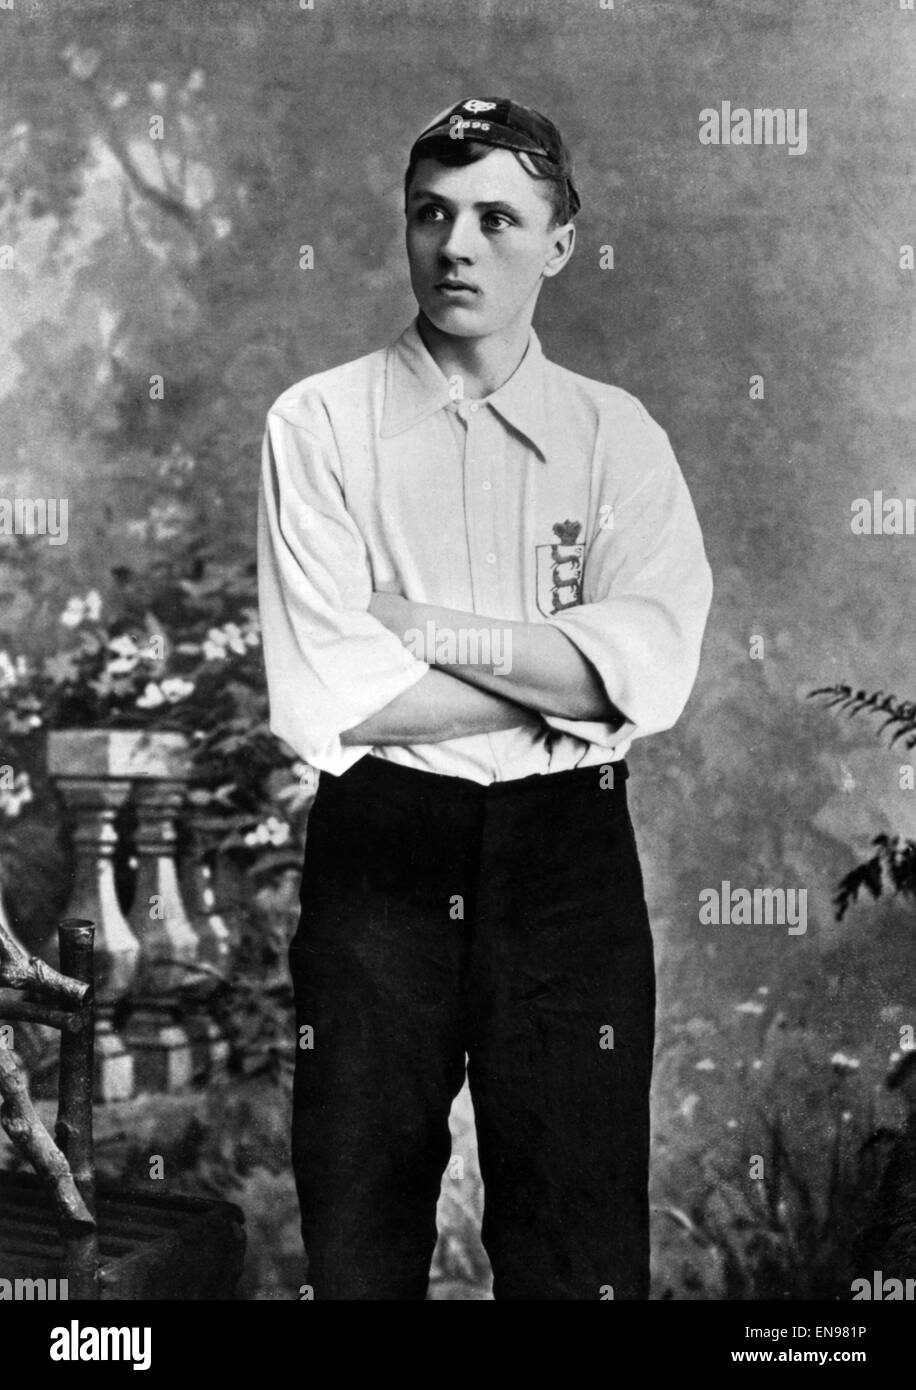 Steve Bloomer, footballer for Derby County and England. c.1895 - Stock Image